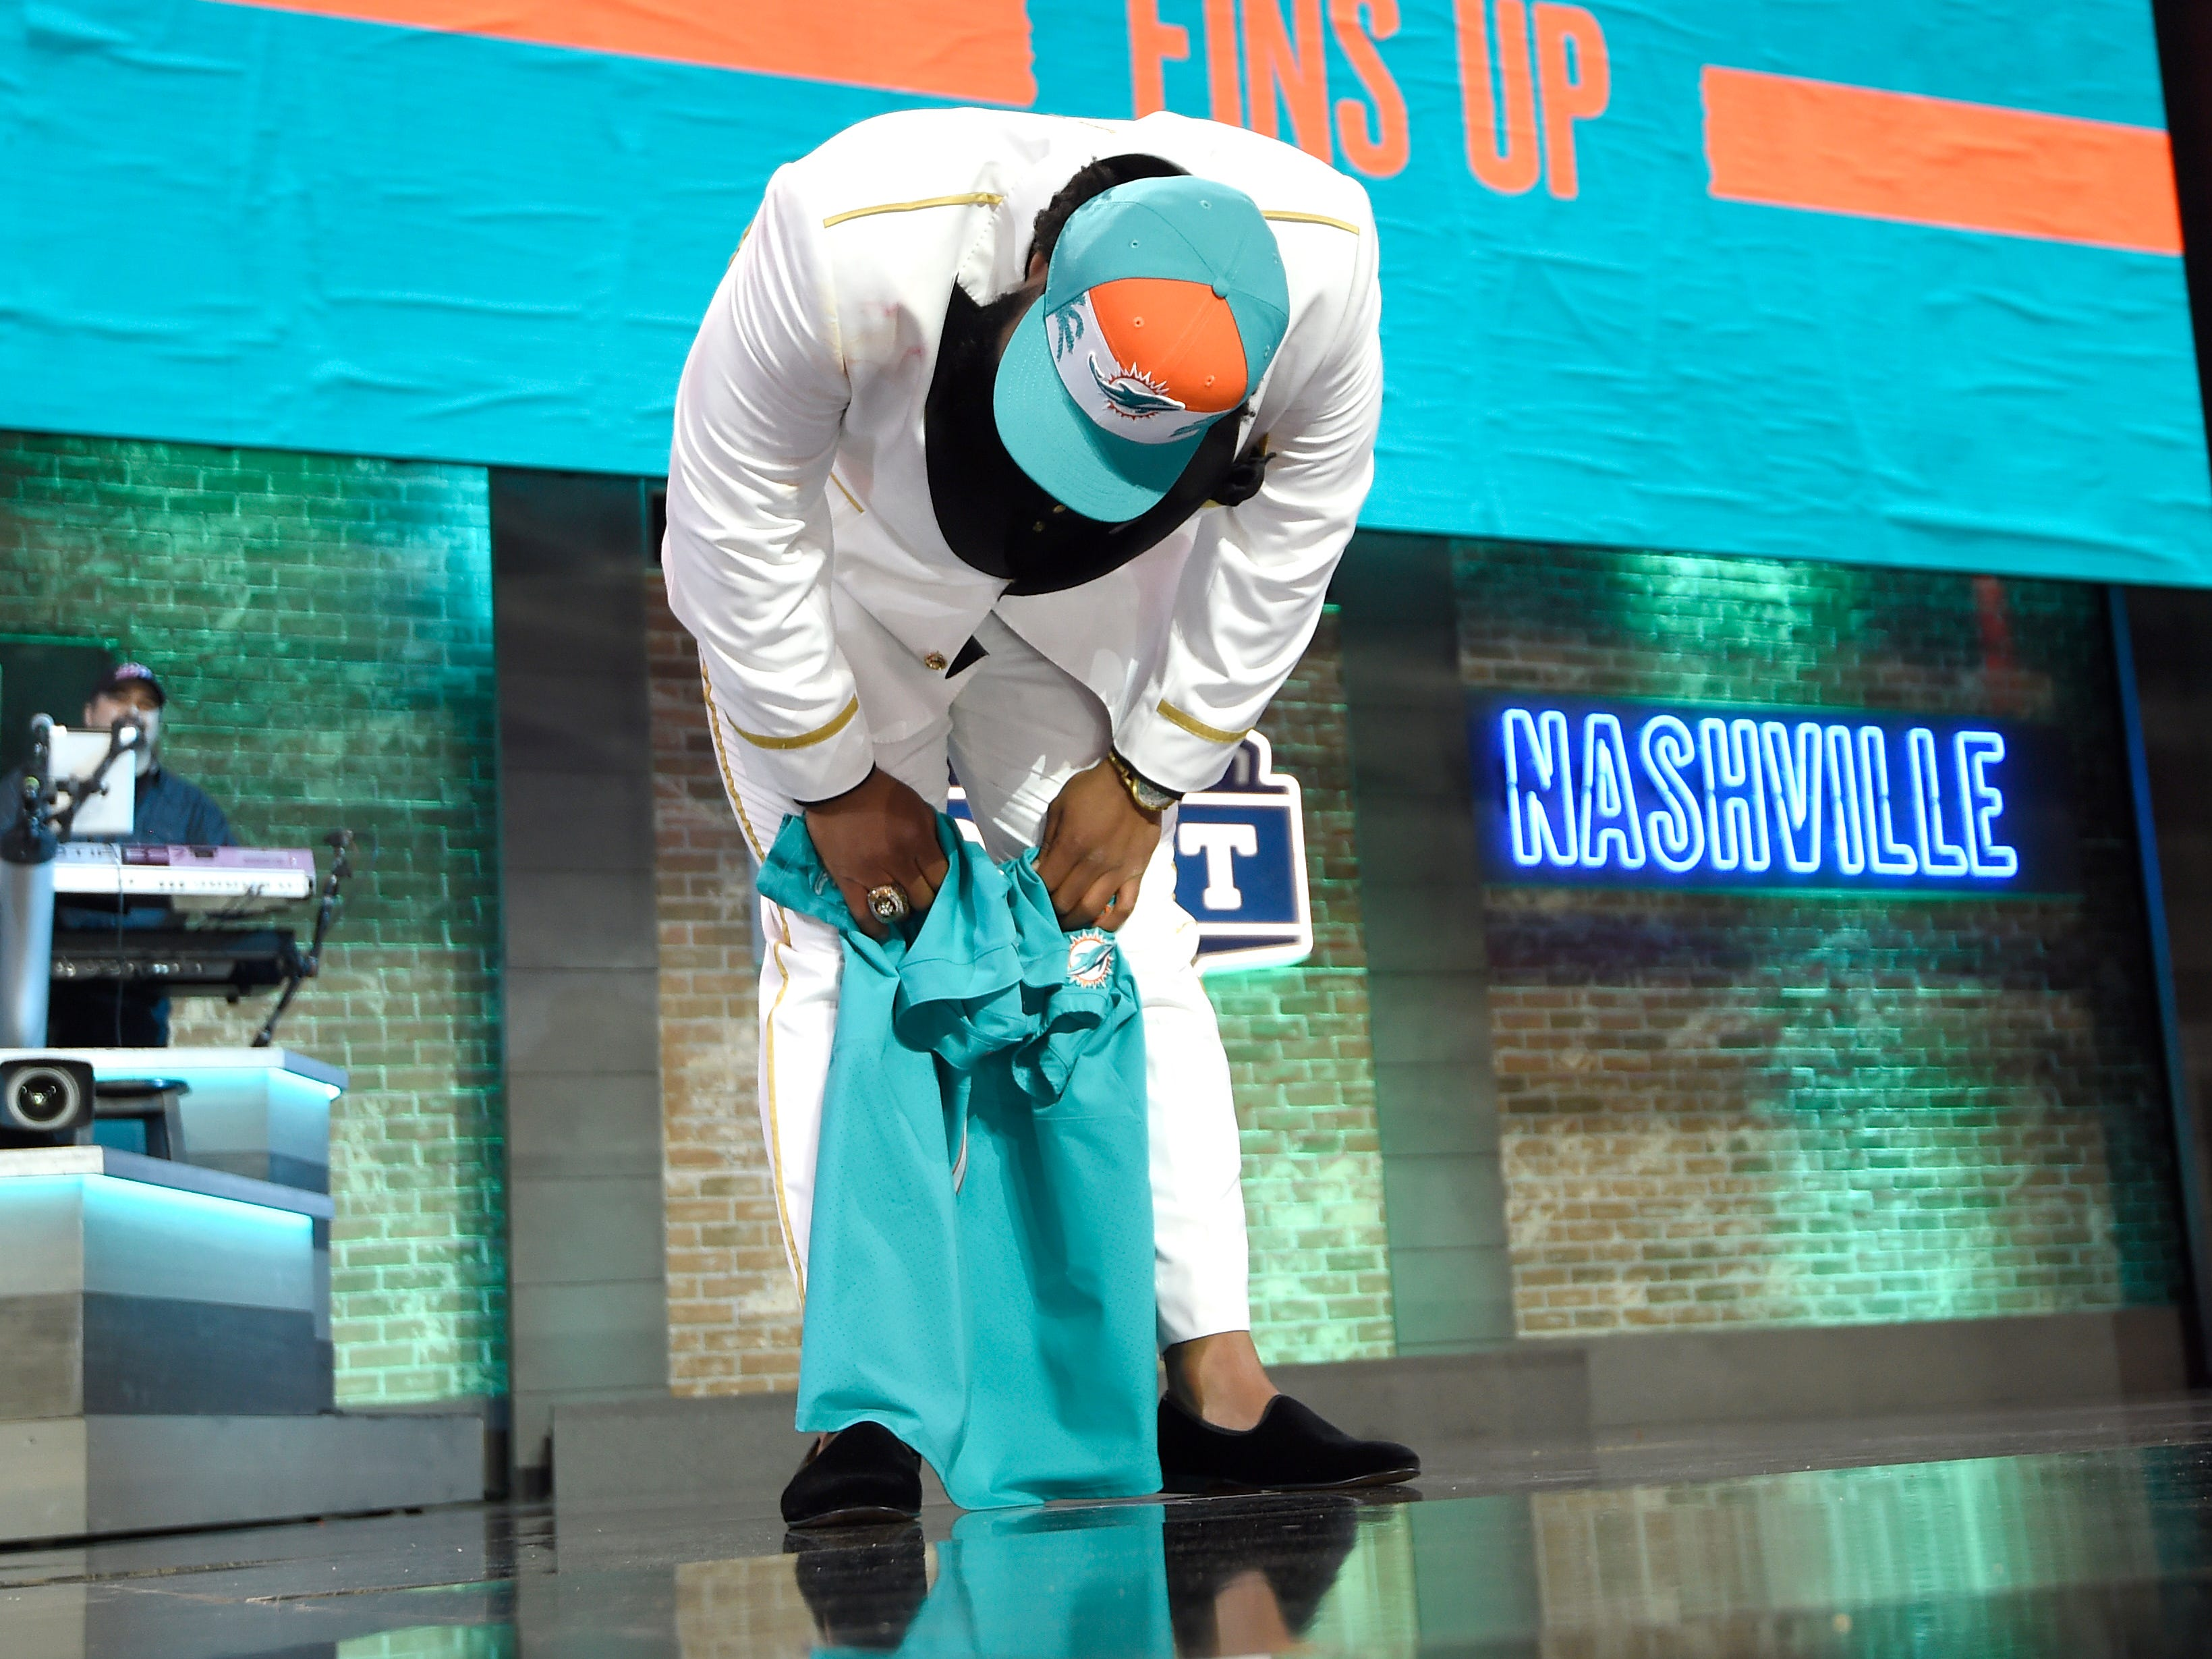 Christian Wilkins gets emotional after his his pick by the Miami Dolphins during the first round of the NFL Draft Thursday, April 25, 2019, in Nashville, Tenn.